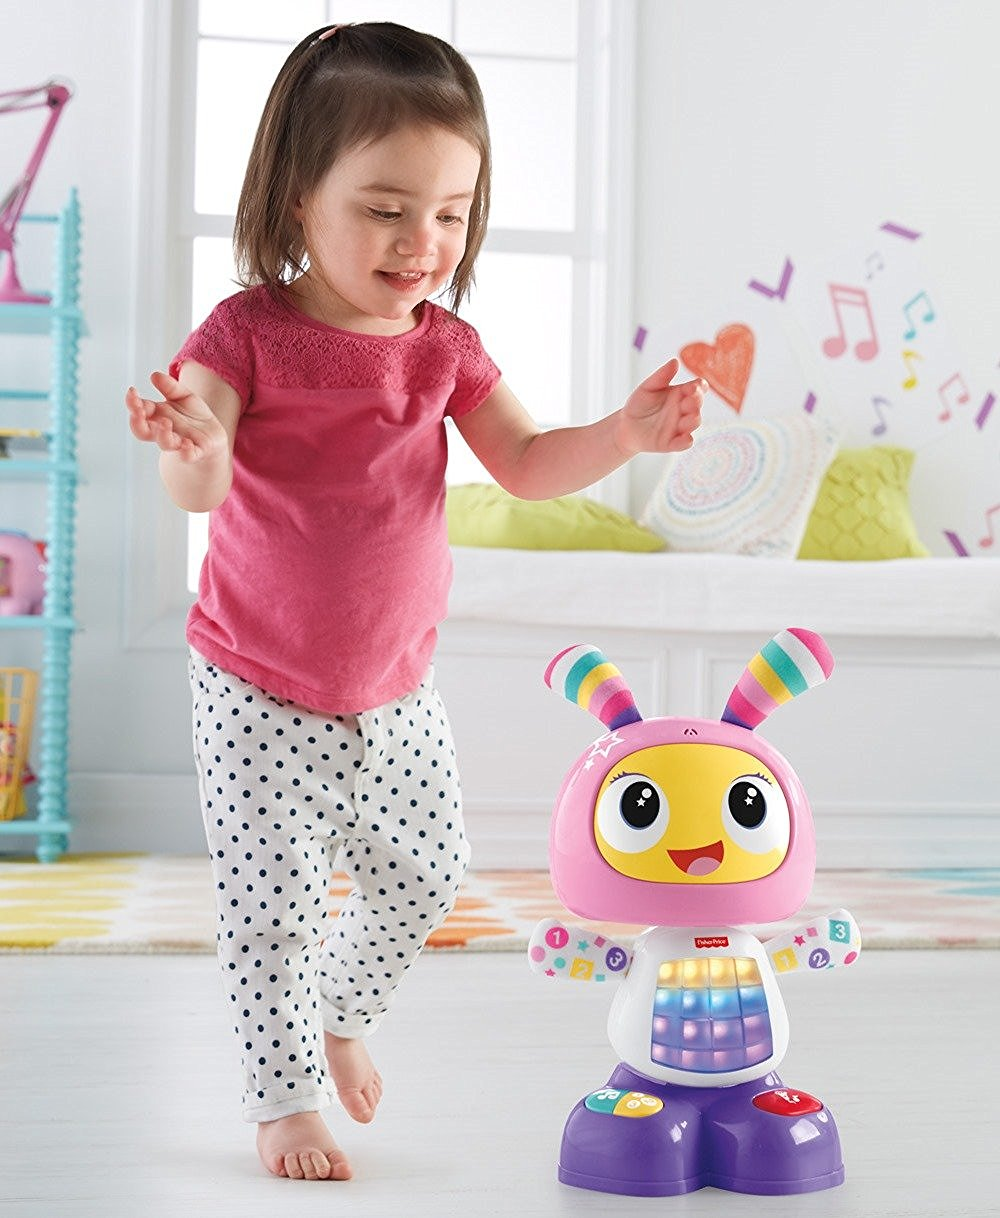 Award Winning Toys for Toddlers - 2019 Educational Toys ...